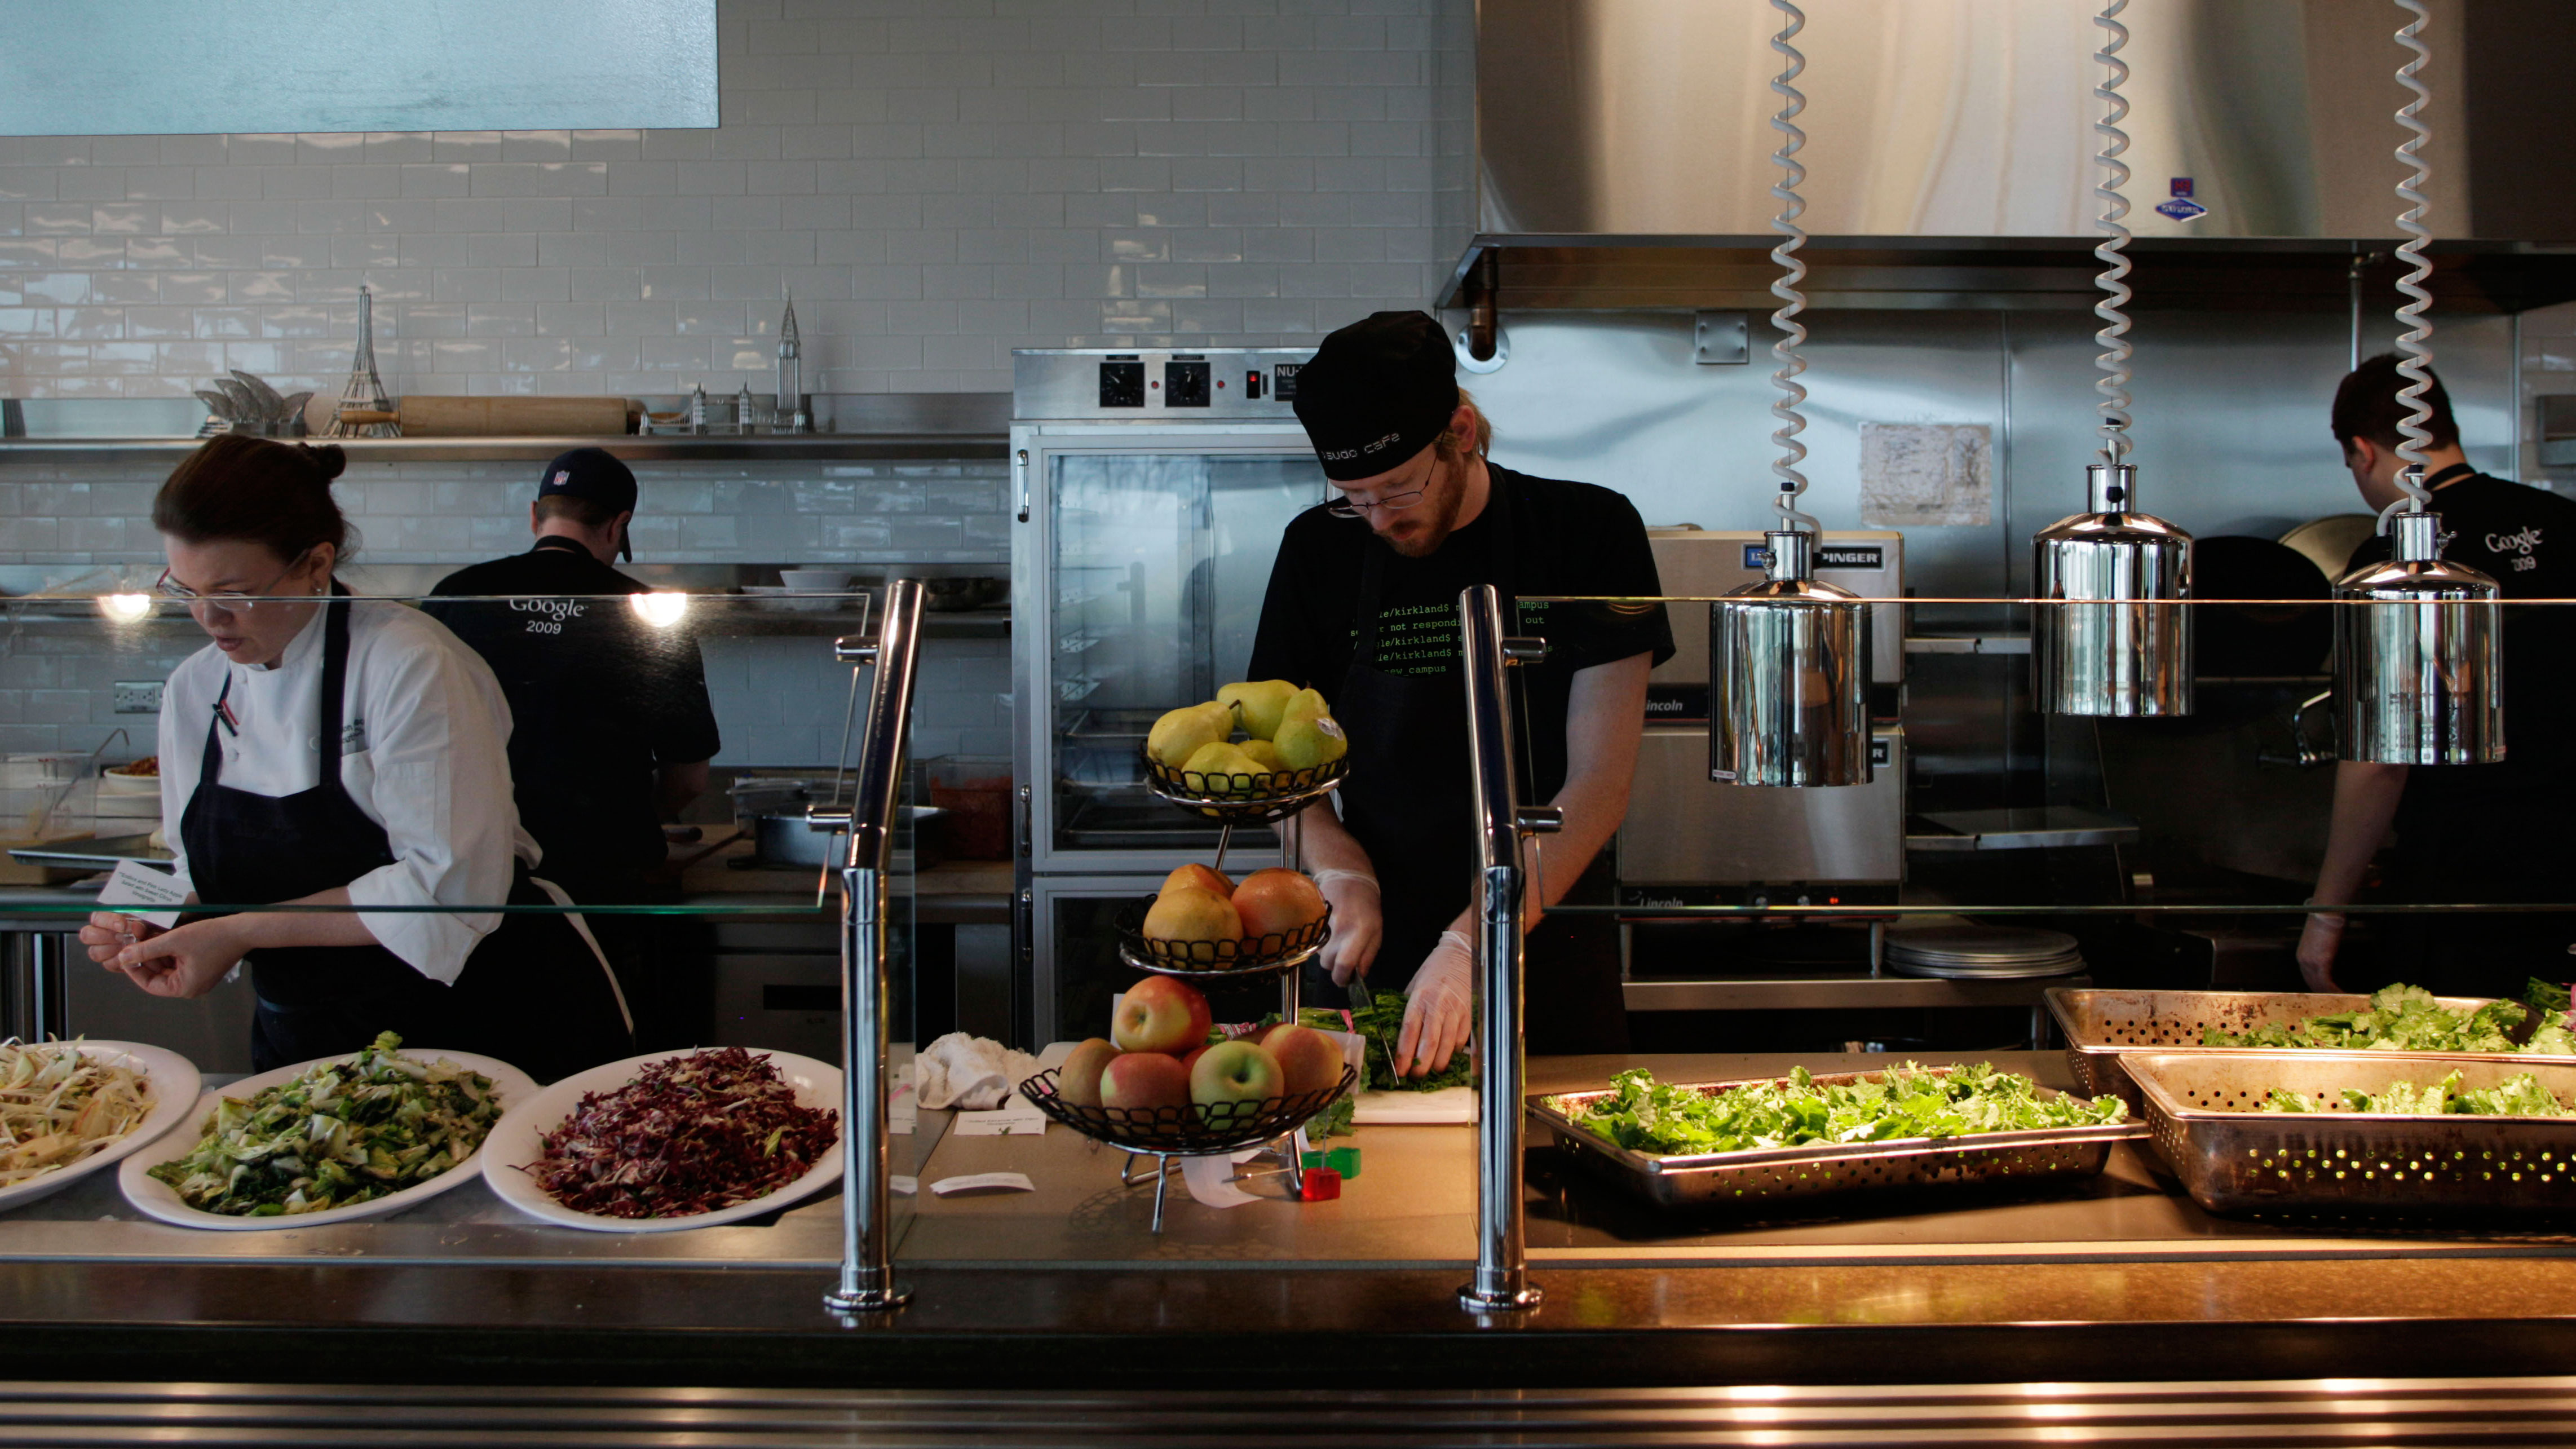 Workers prepare food in the employee cafeteria of Google Inc.'s new campus in Kirkland, Wash., Wednesday, Oct. 28, 2009, during a media open house. More than 350 of Google's approximately 20,000 employees currently work in the Kirkland office and they can eat free at several different kitchen facilities in the building. (AP Photo/Ted S. Warren)